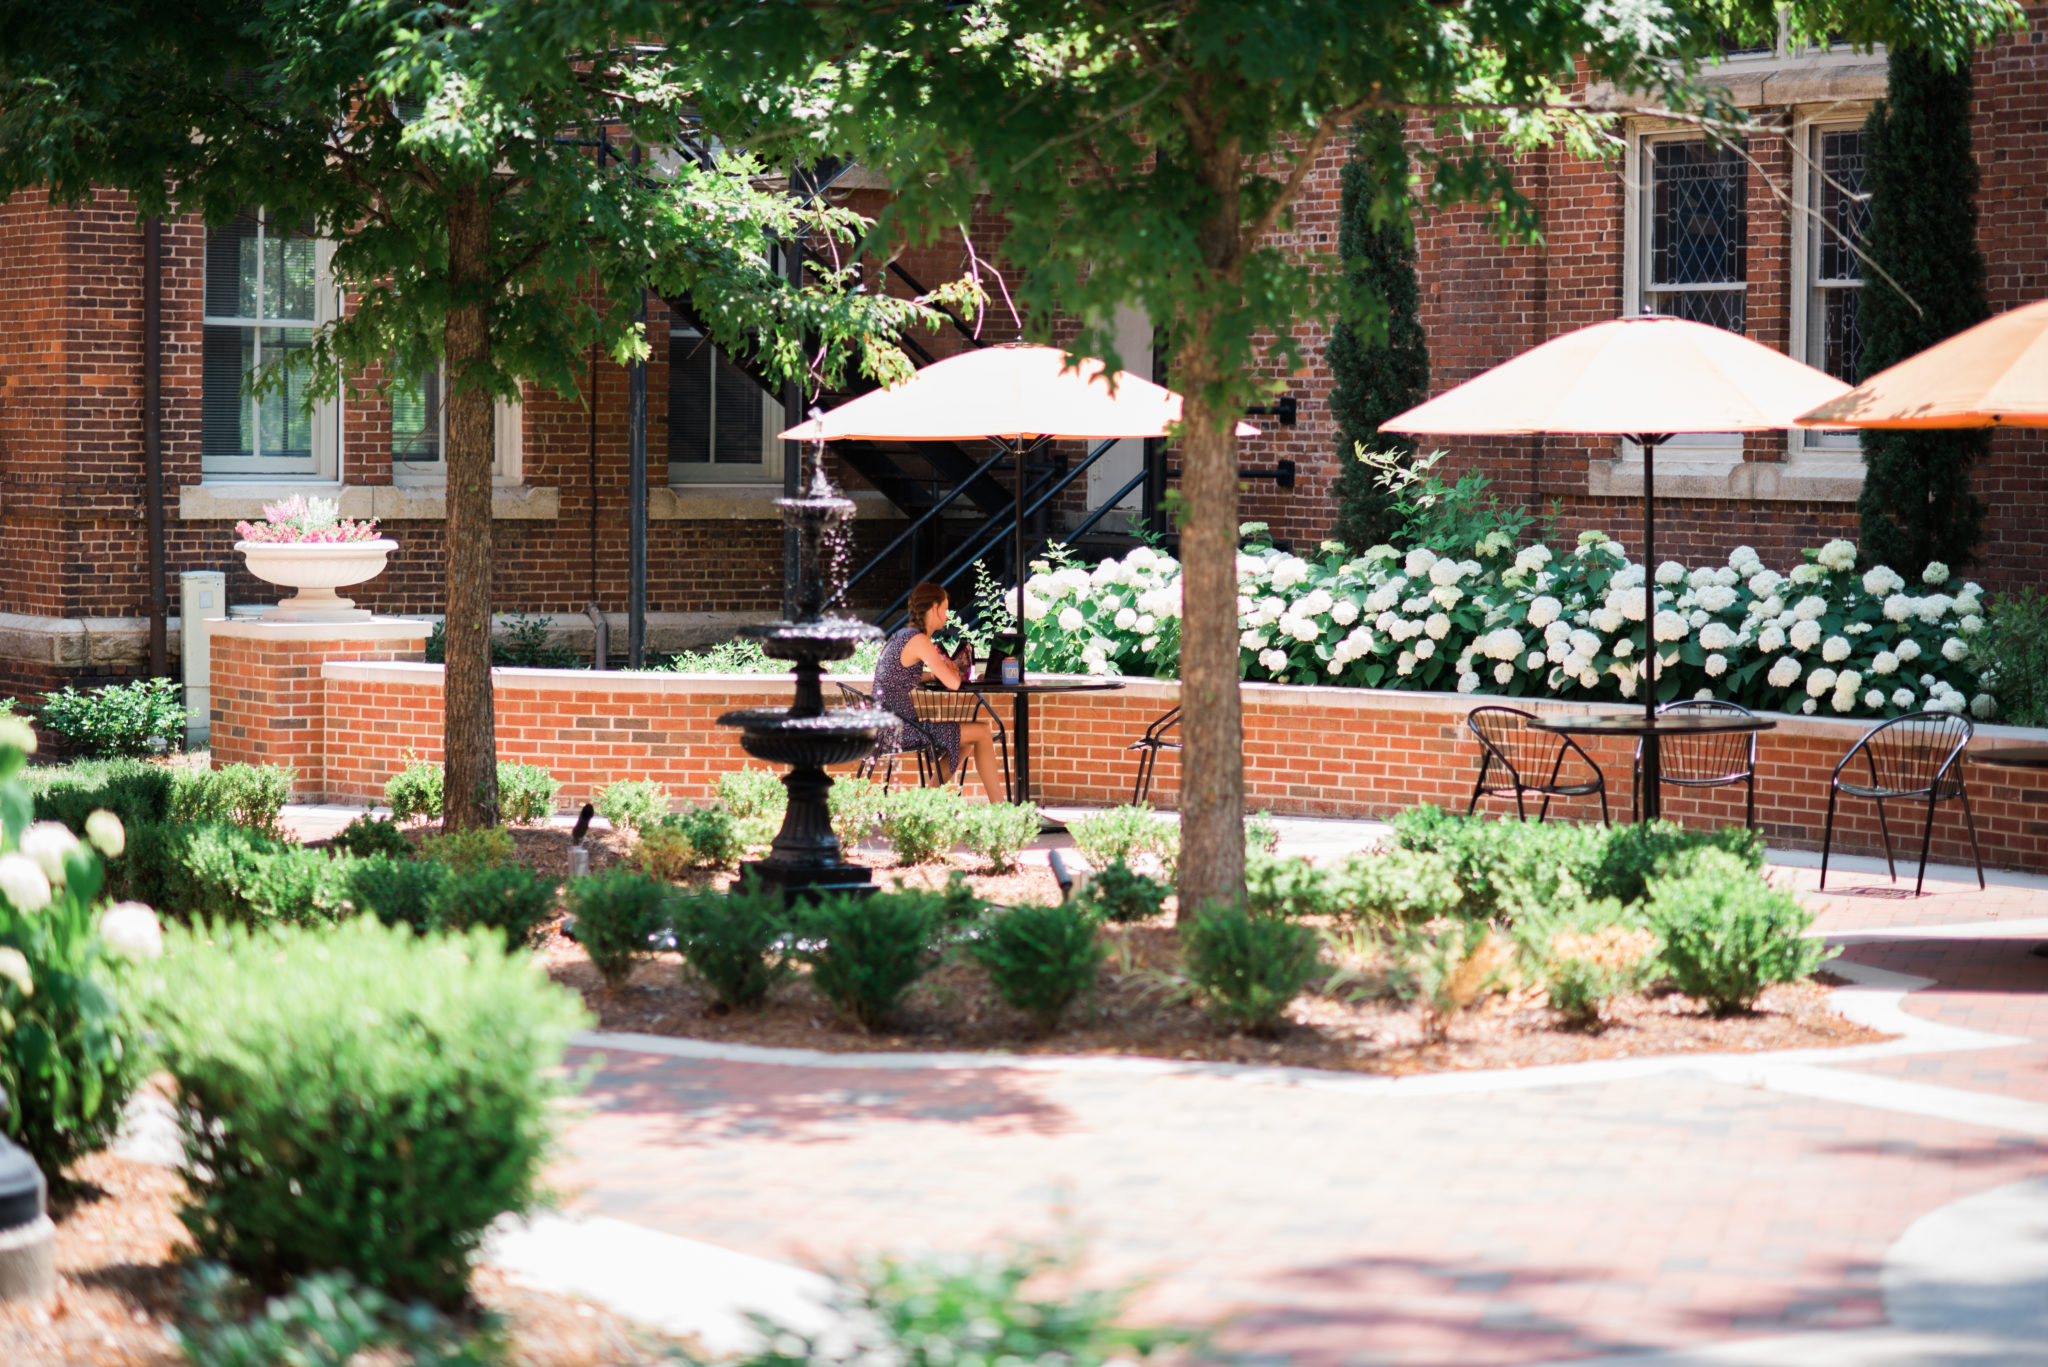 A student sits at a table in the Willingham courtyard